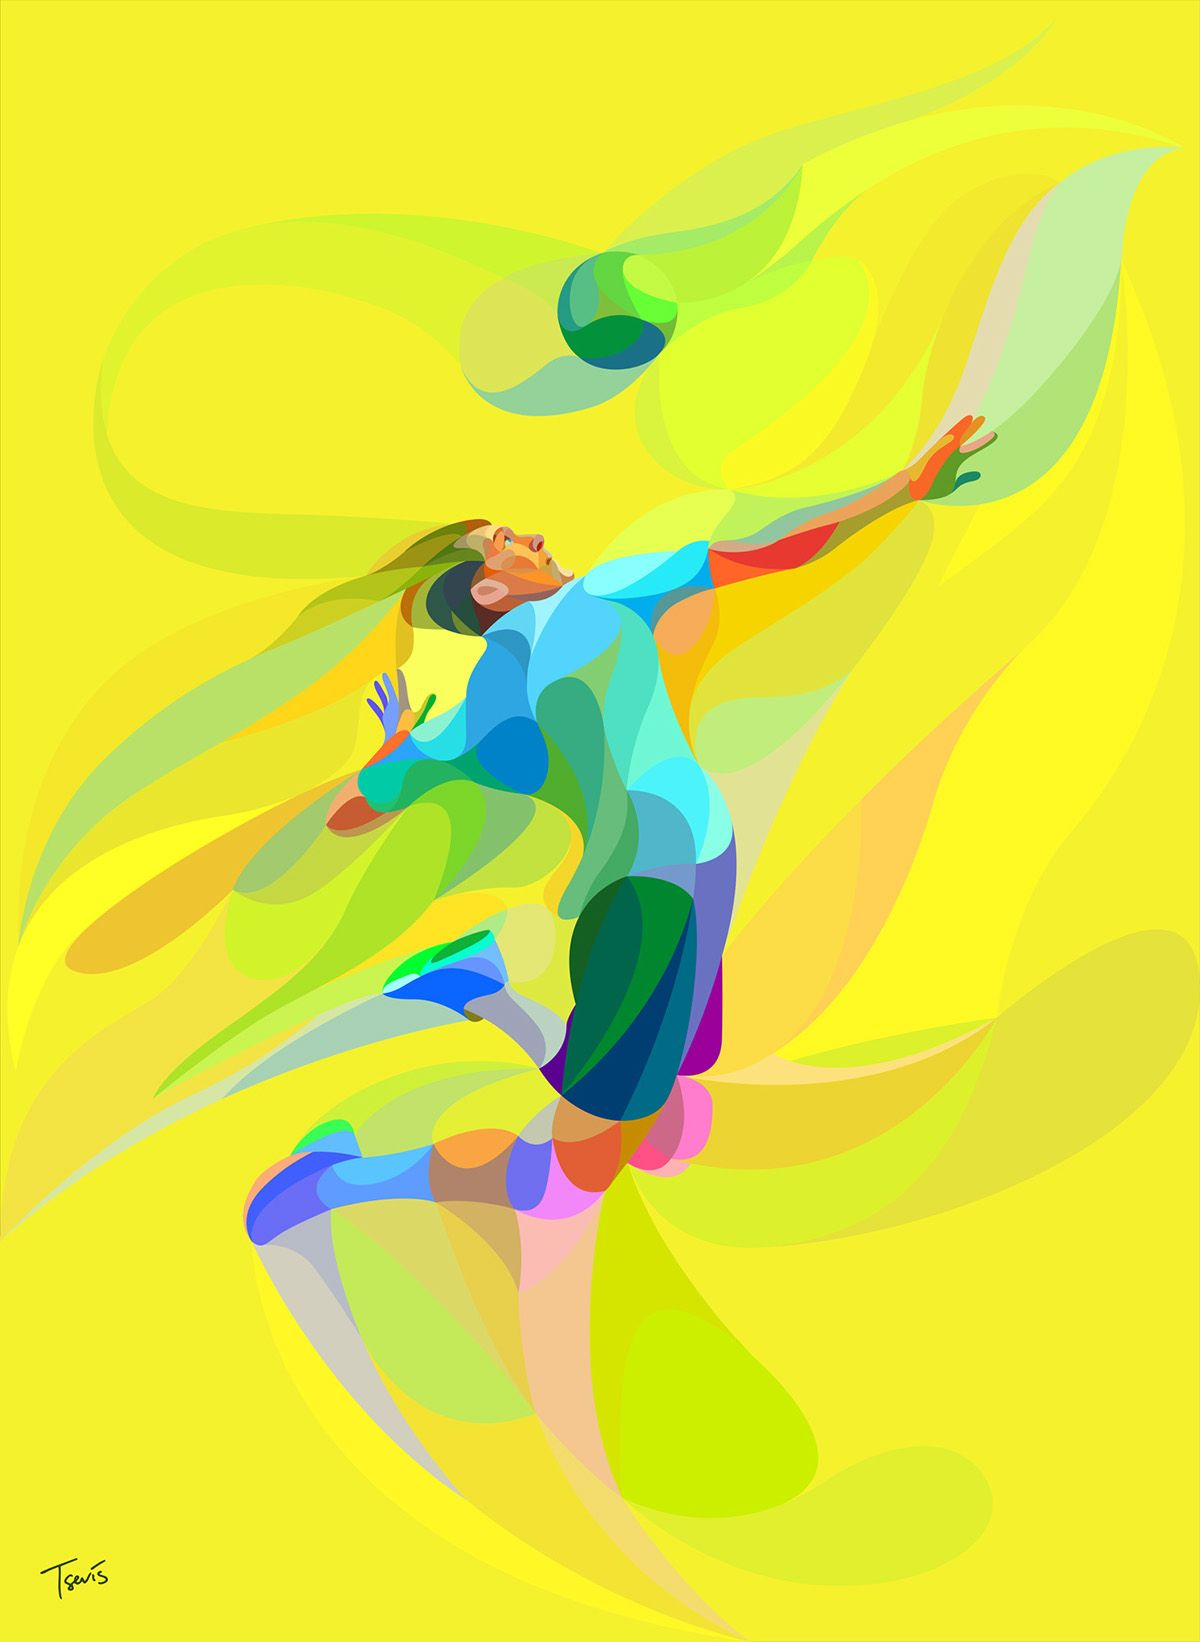 Badminton Quotes Wallpaper Waves Of Color On Behance Neofuturism Futurismo